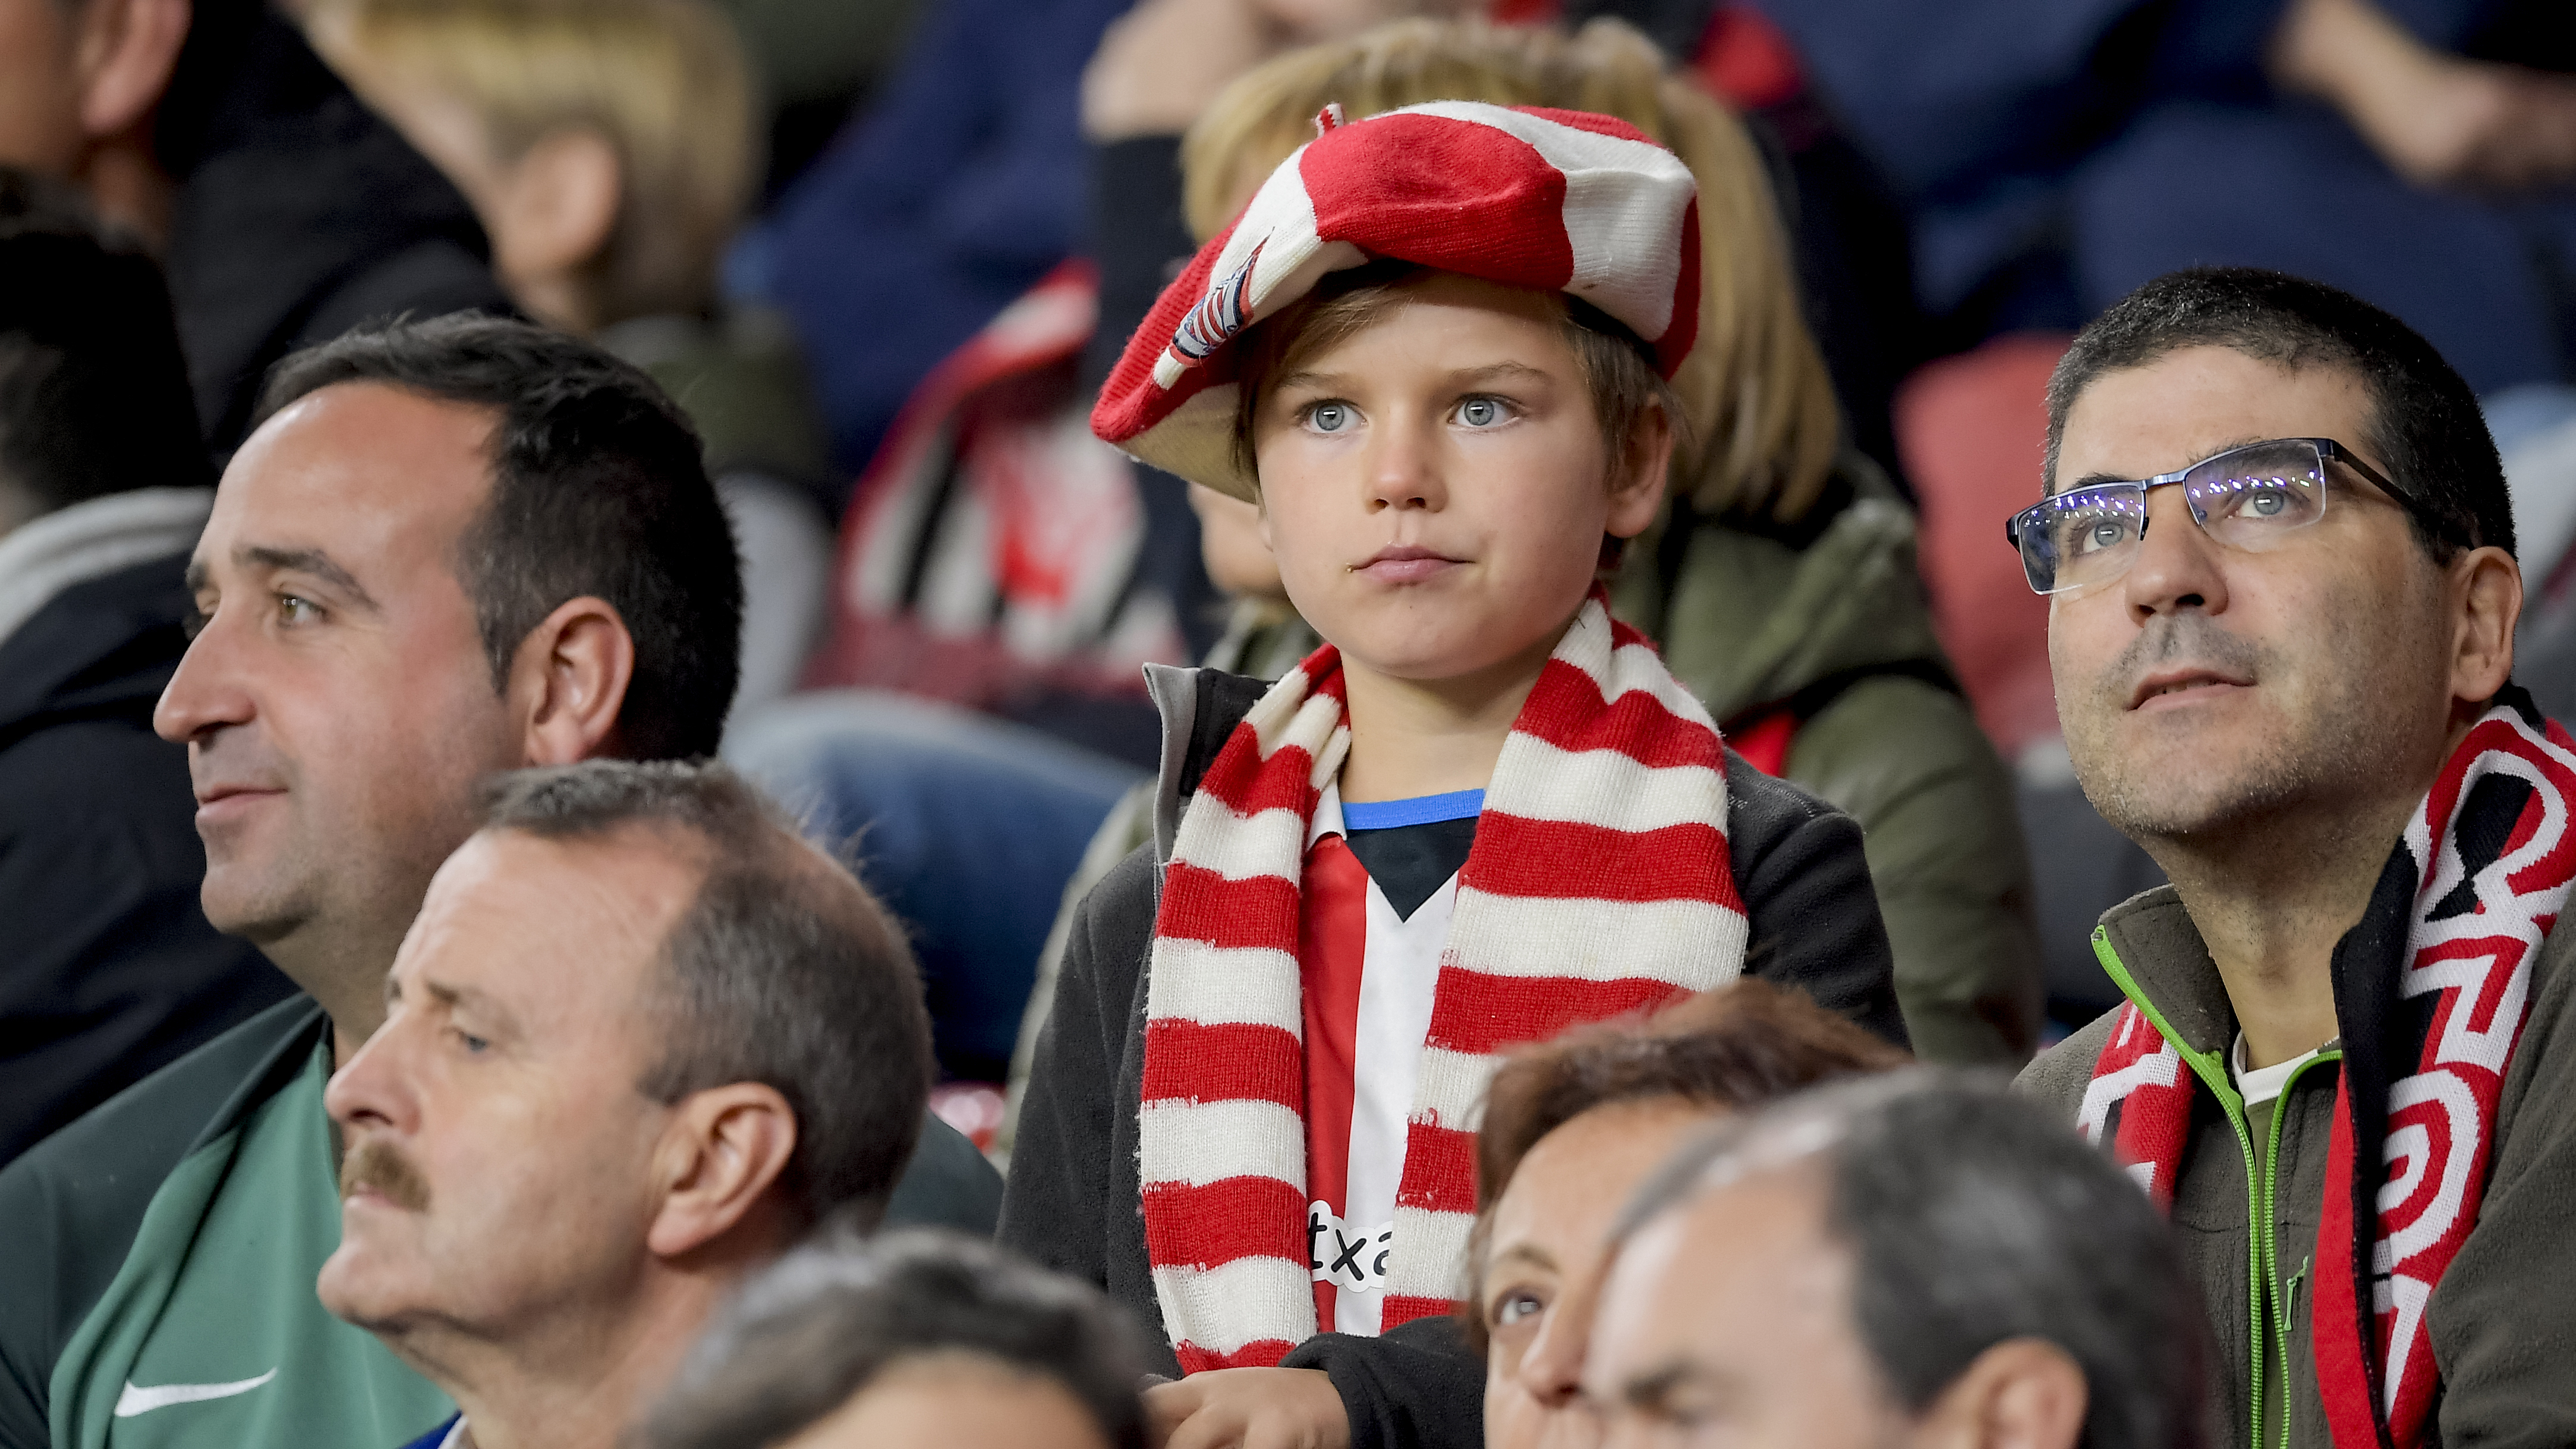 Children tickets for the match against RCD Espanyol